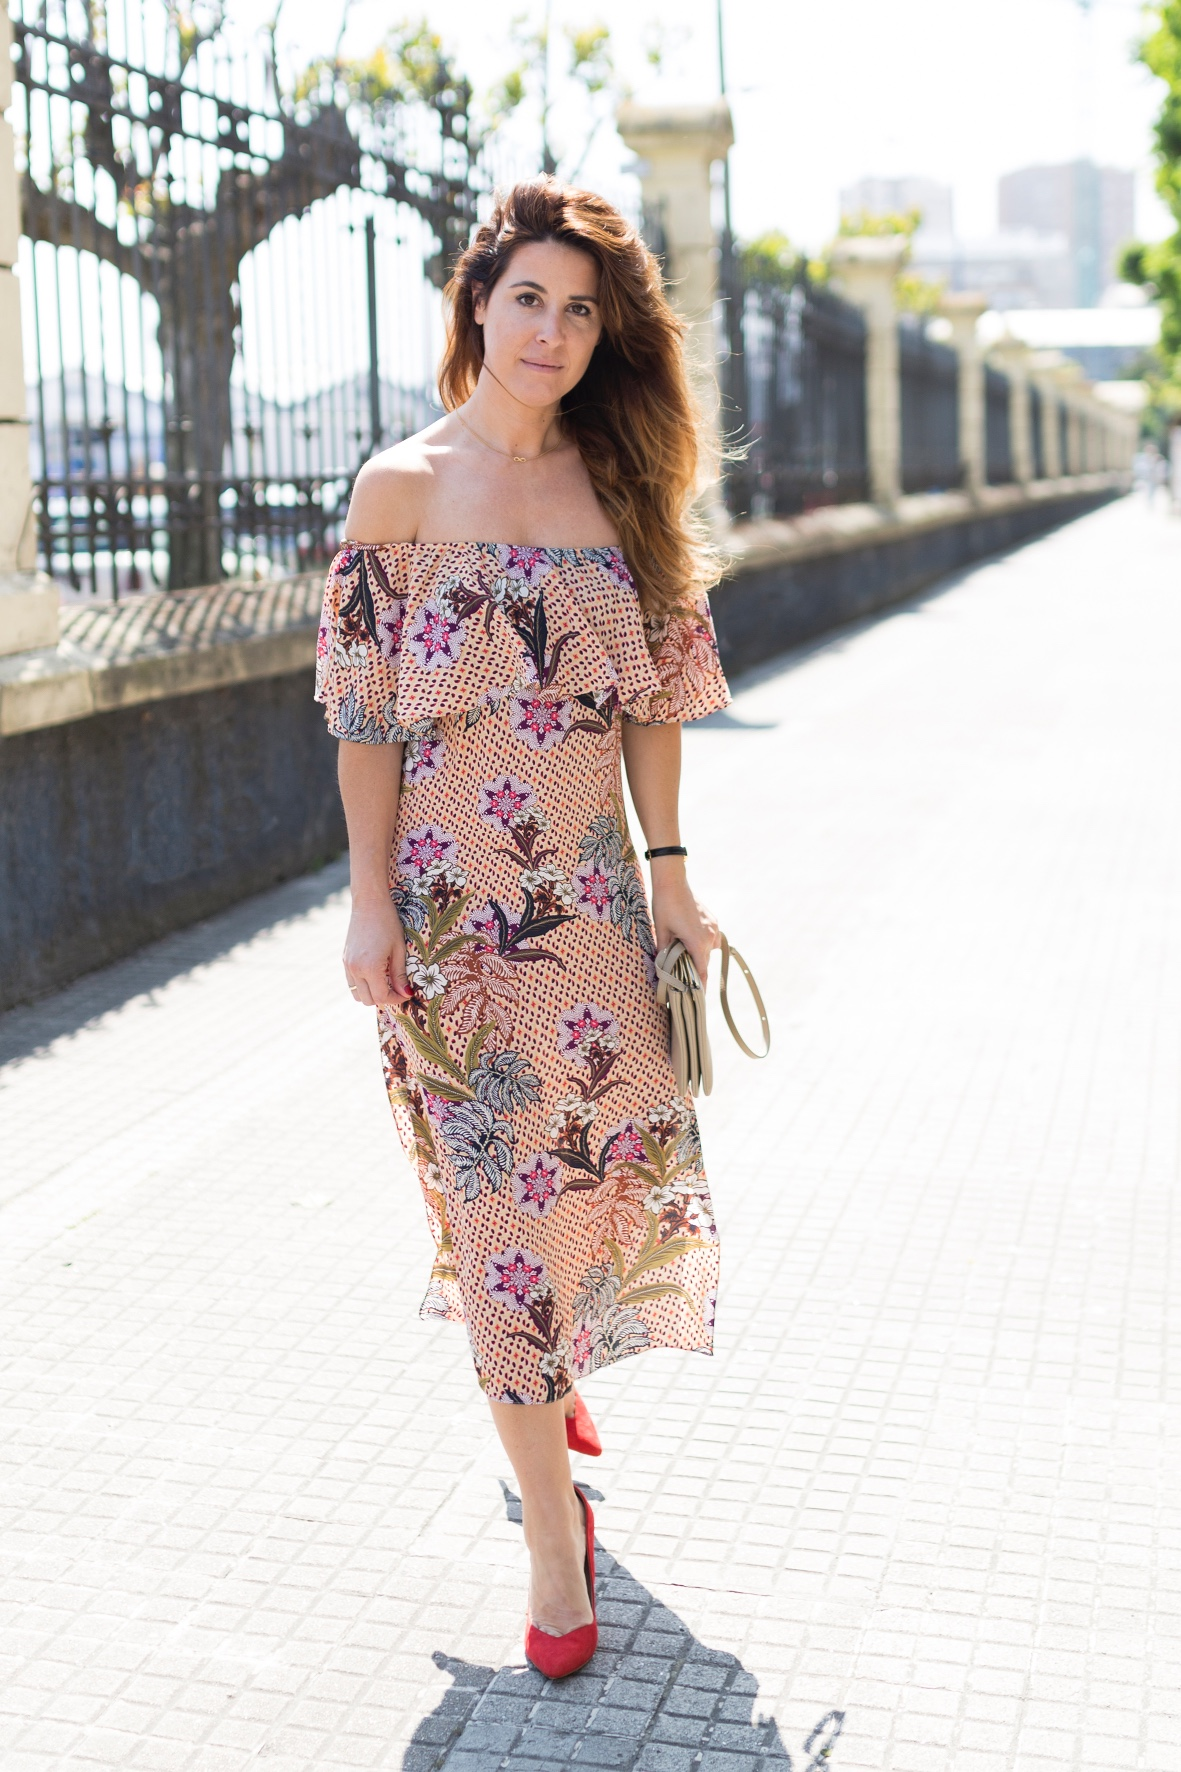 moda-streetstyle-fashion-blogger· cèline bag · coruña ·cèline -dress · street · trió bag · zara